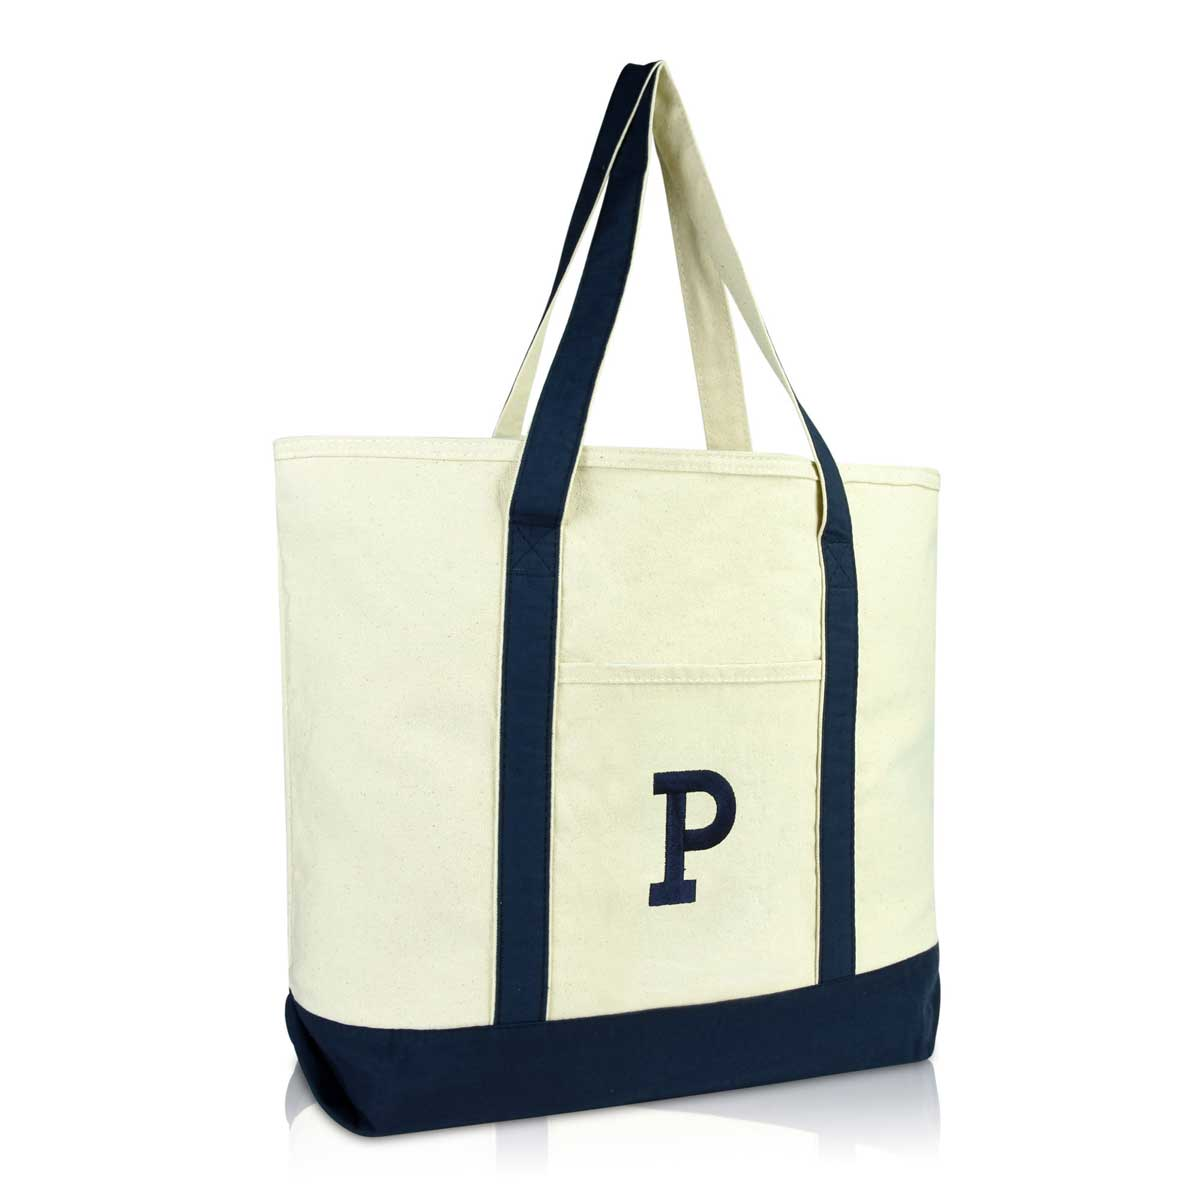 19e51d8935f755 DALIX Initial Tote Bag Personalized Monogram Zippered Top Letter - P